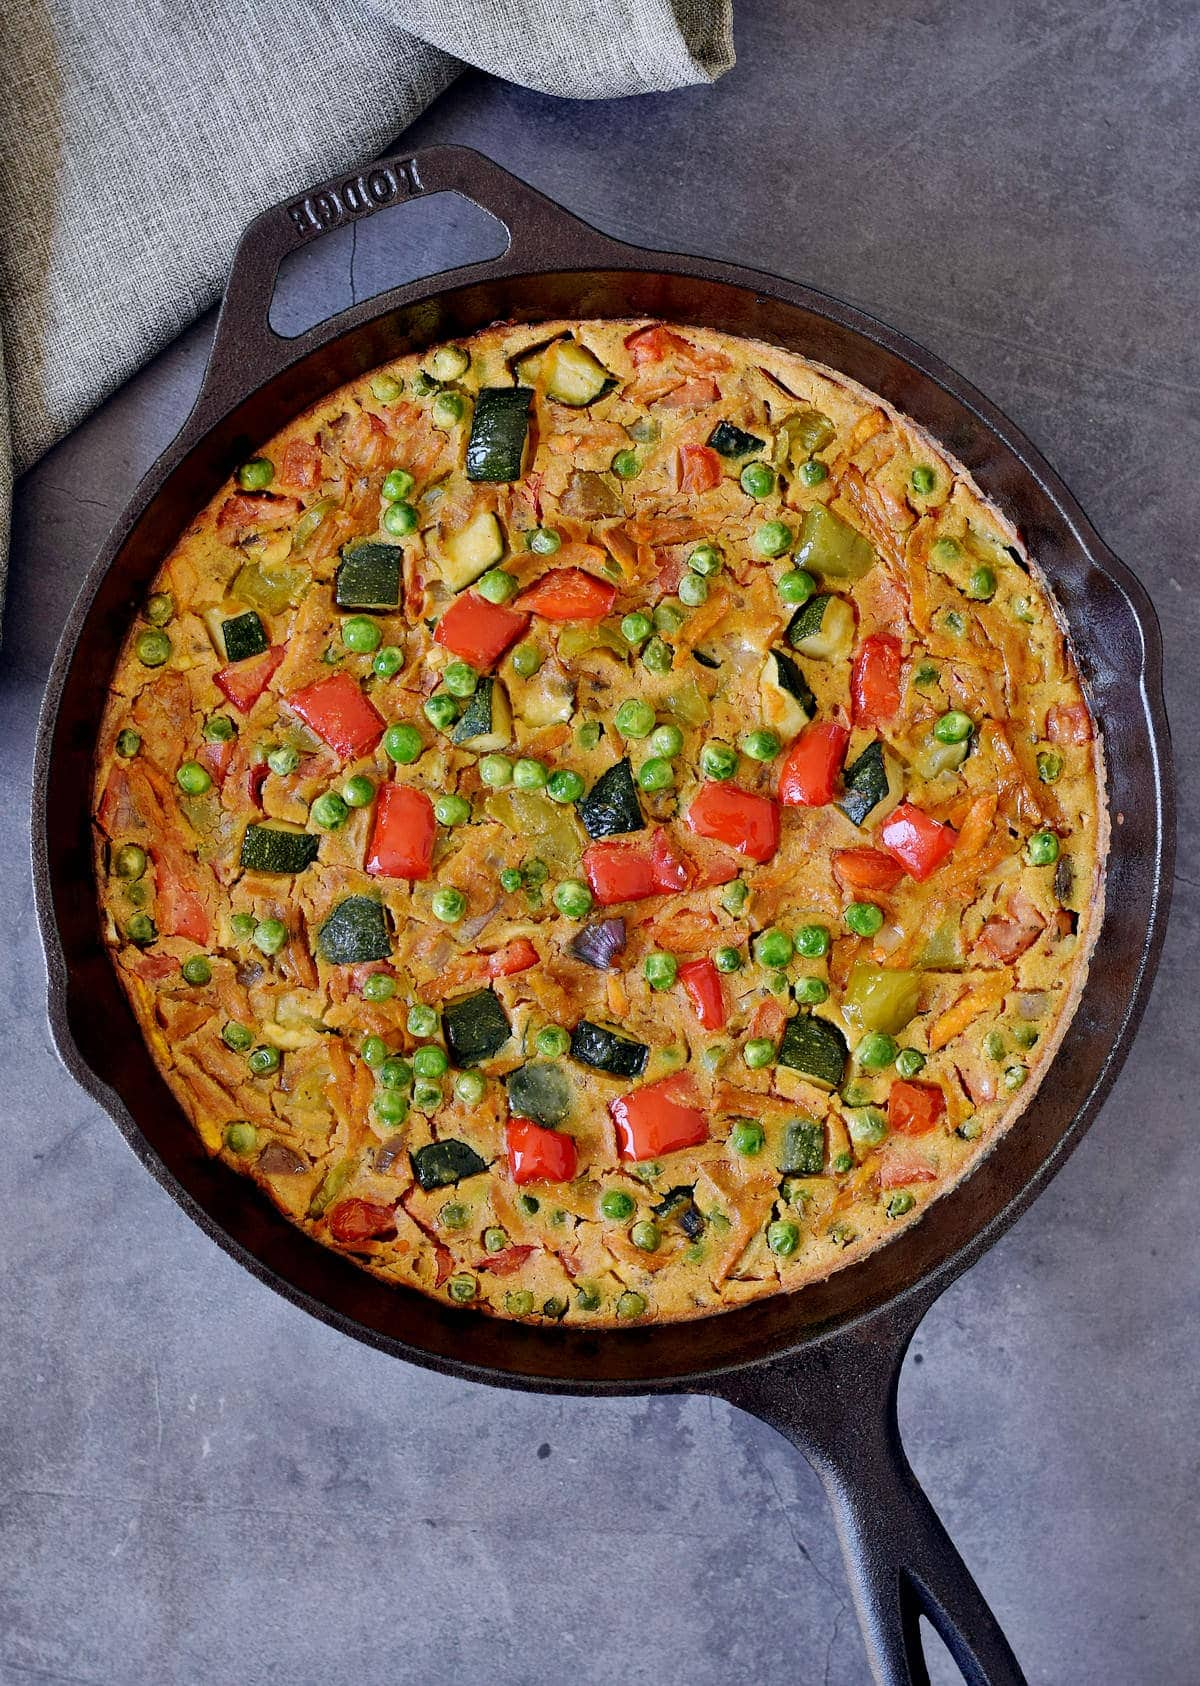 Oven-baked crustless quiche in a black skillet